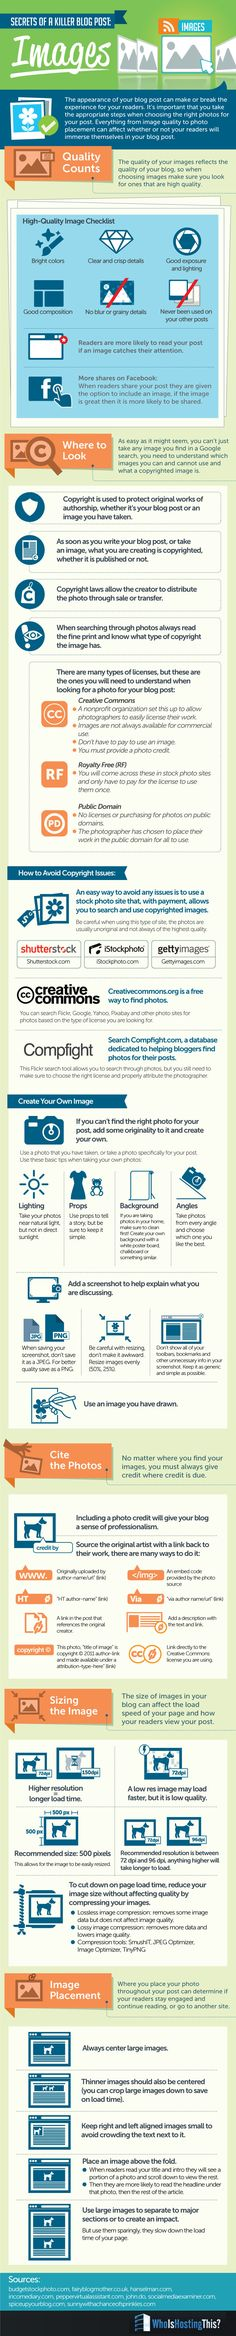 The Science of a Killer Blog Post: Images - infographic